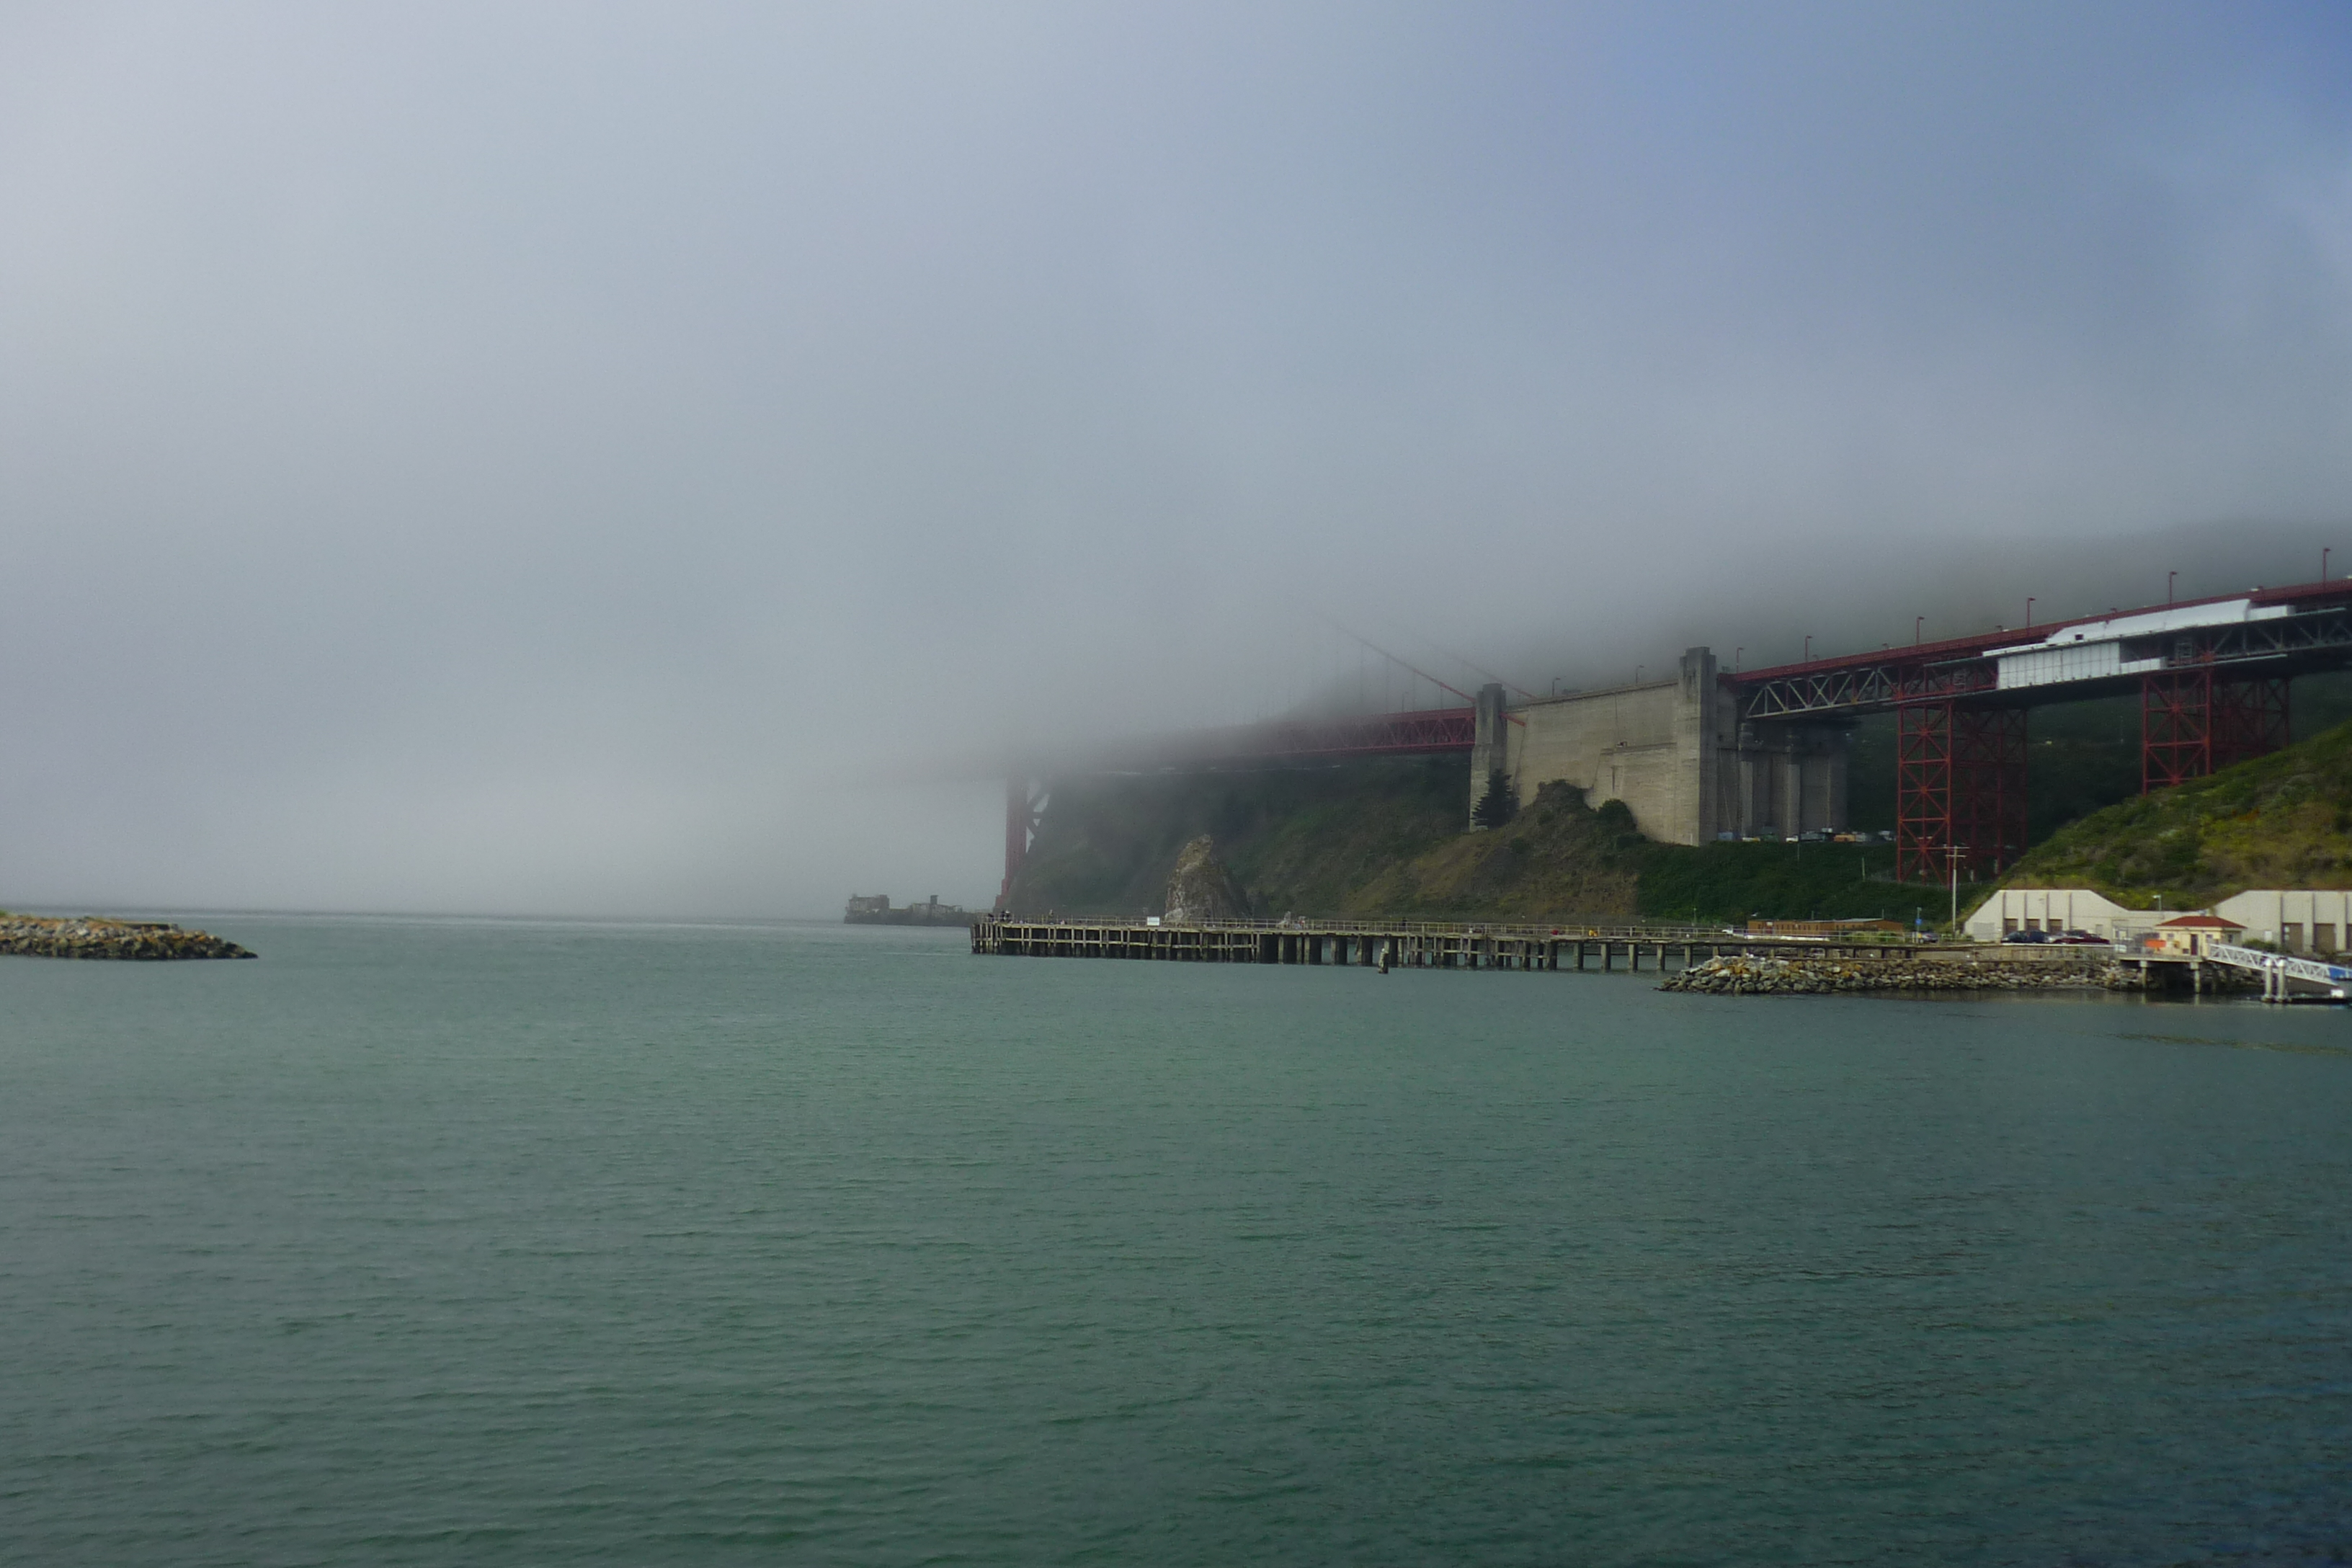 Golden Gate Bridge - Somewhere in there